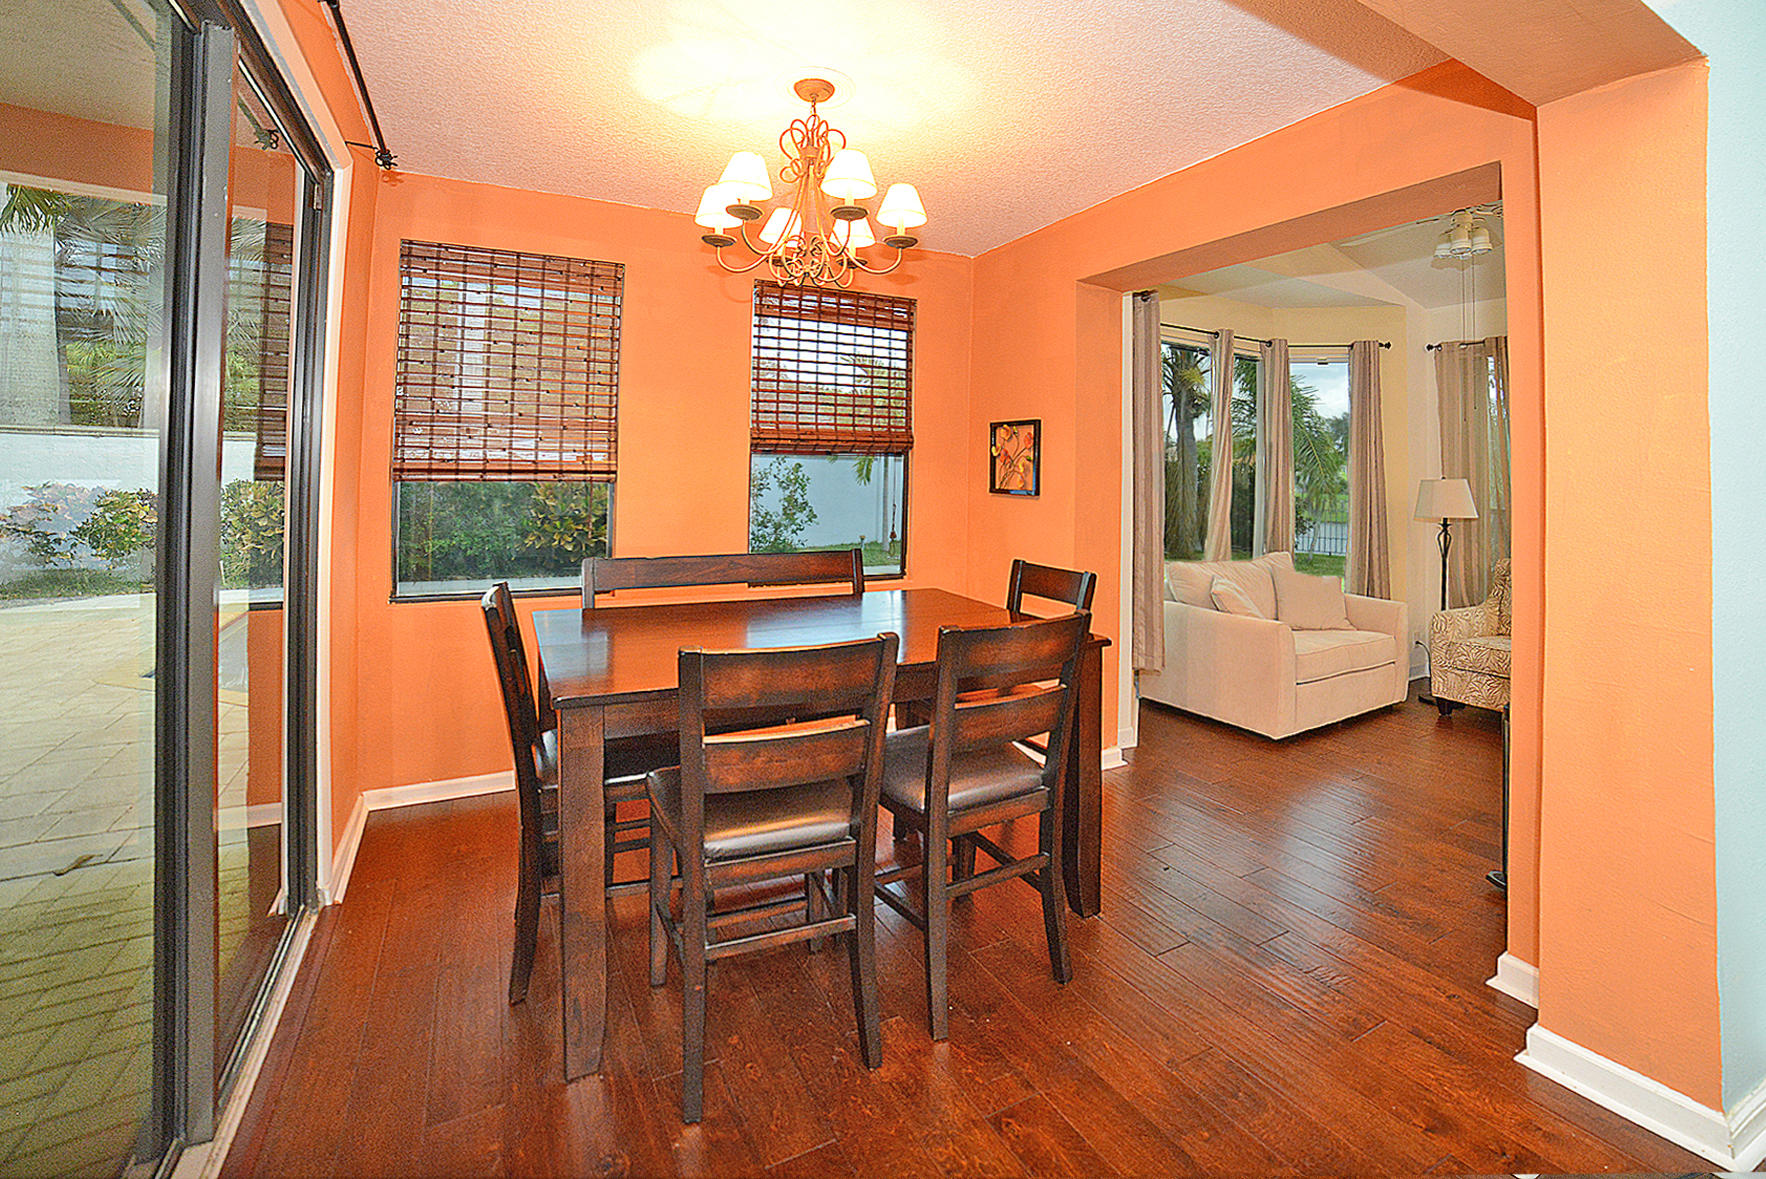 2147 60th Circle, Boca Raton, Florida 33496, 3 Bedrooms Bedrooms, ,4 BathroomsBathrooms,Single Family,For Sale,Broken Sound,60th,1,RX-10330578